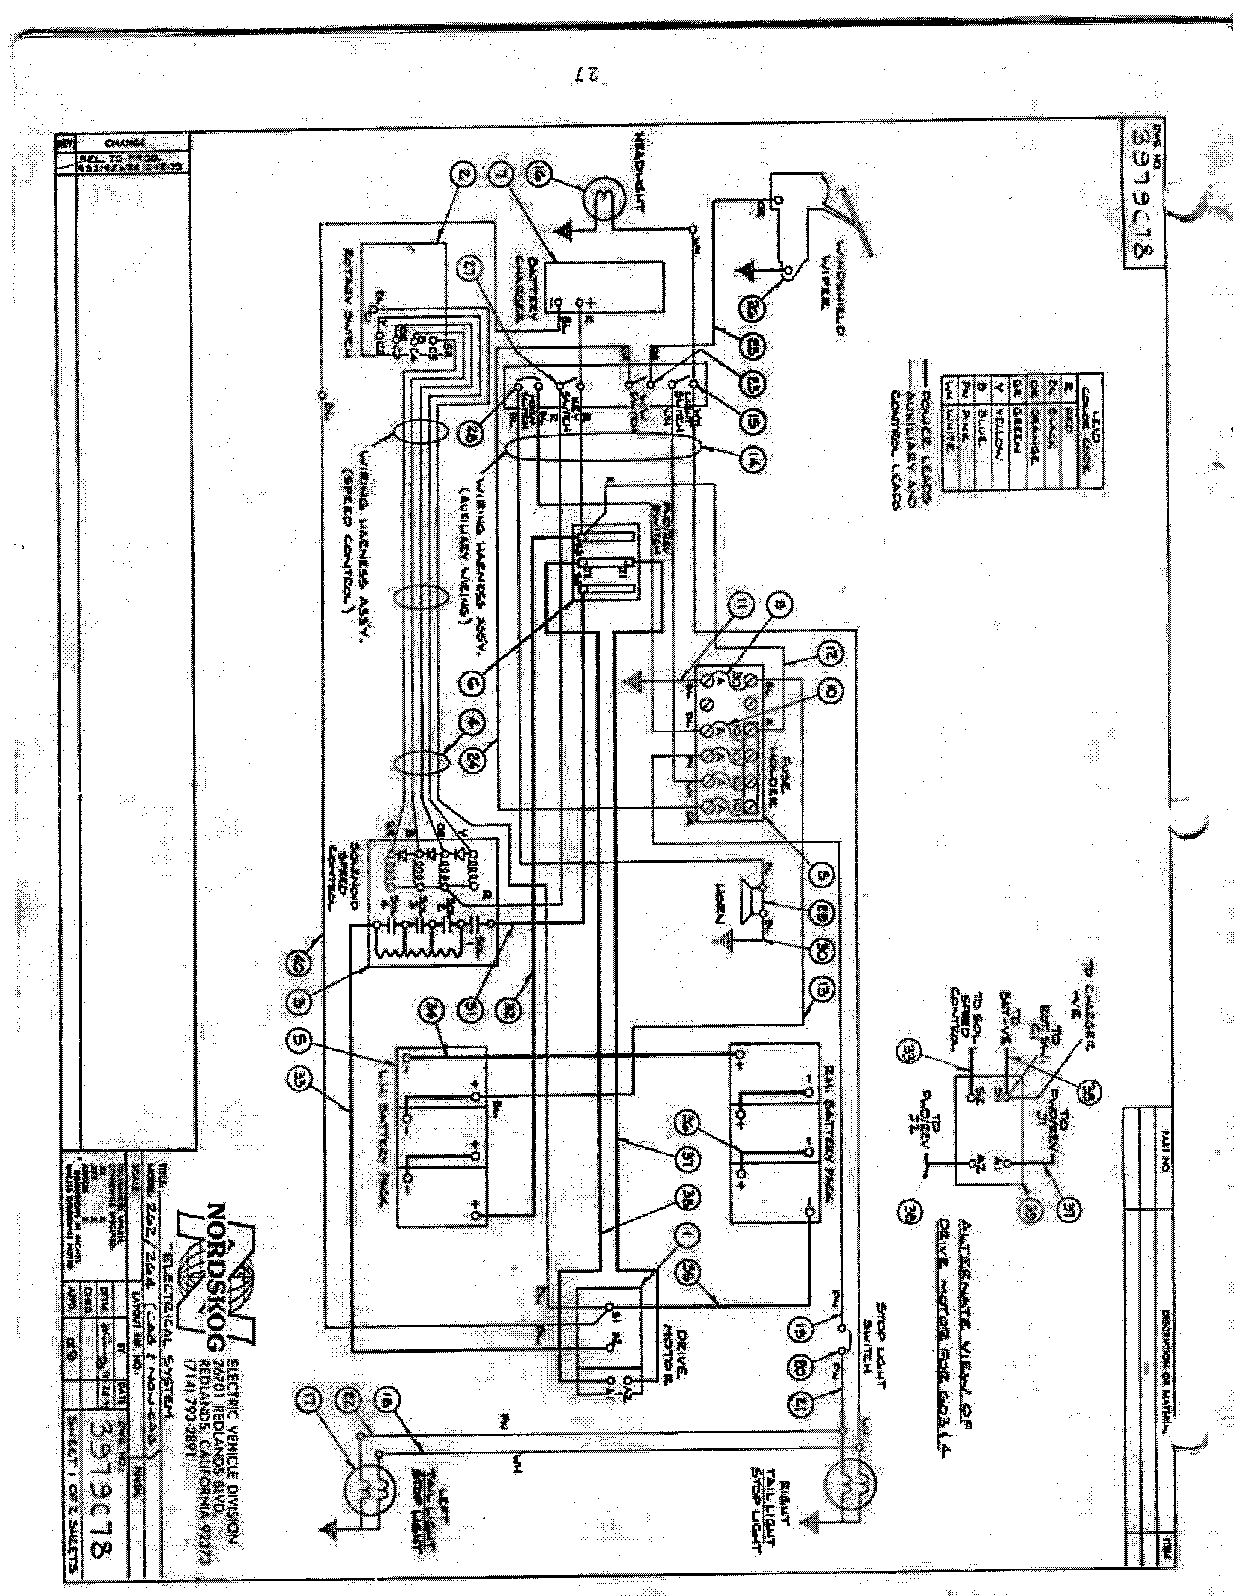 Tomberlin Emerge Wiring. Wiring. Wiring Diagram Images